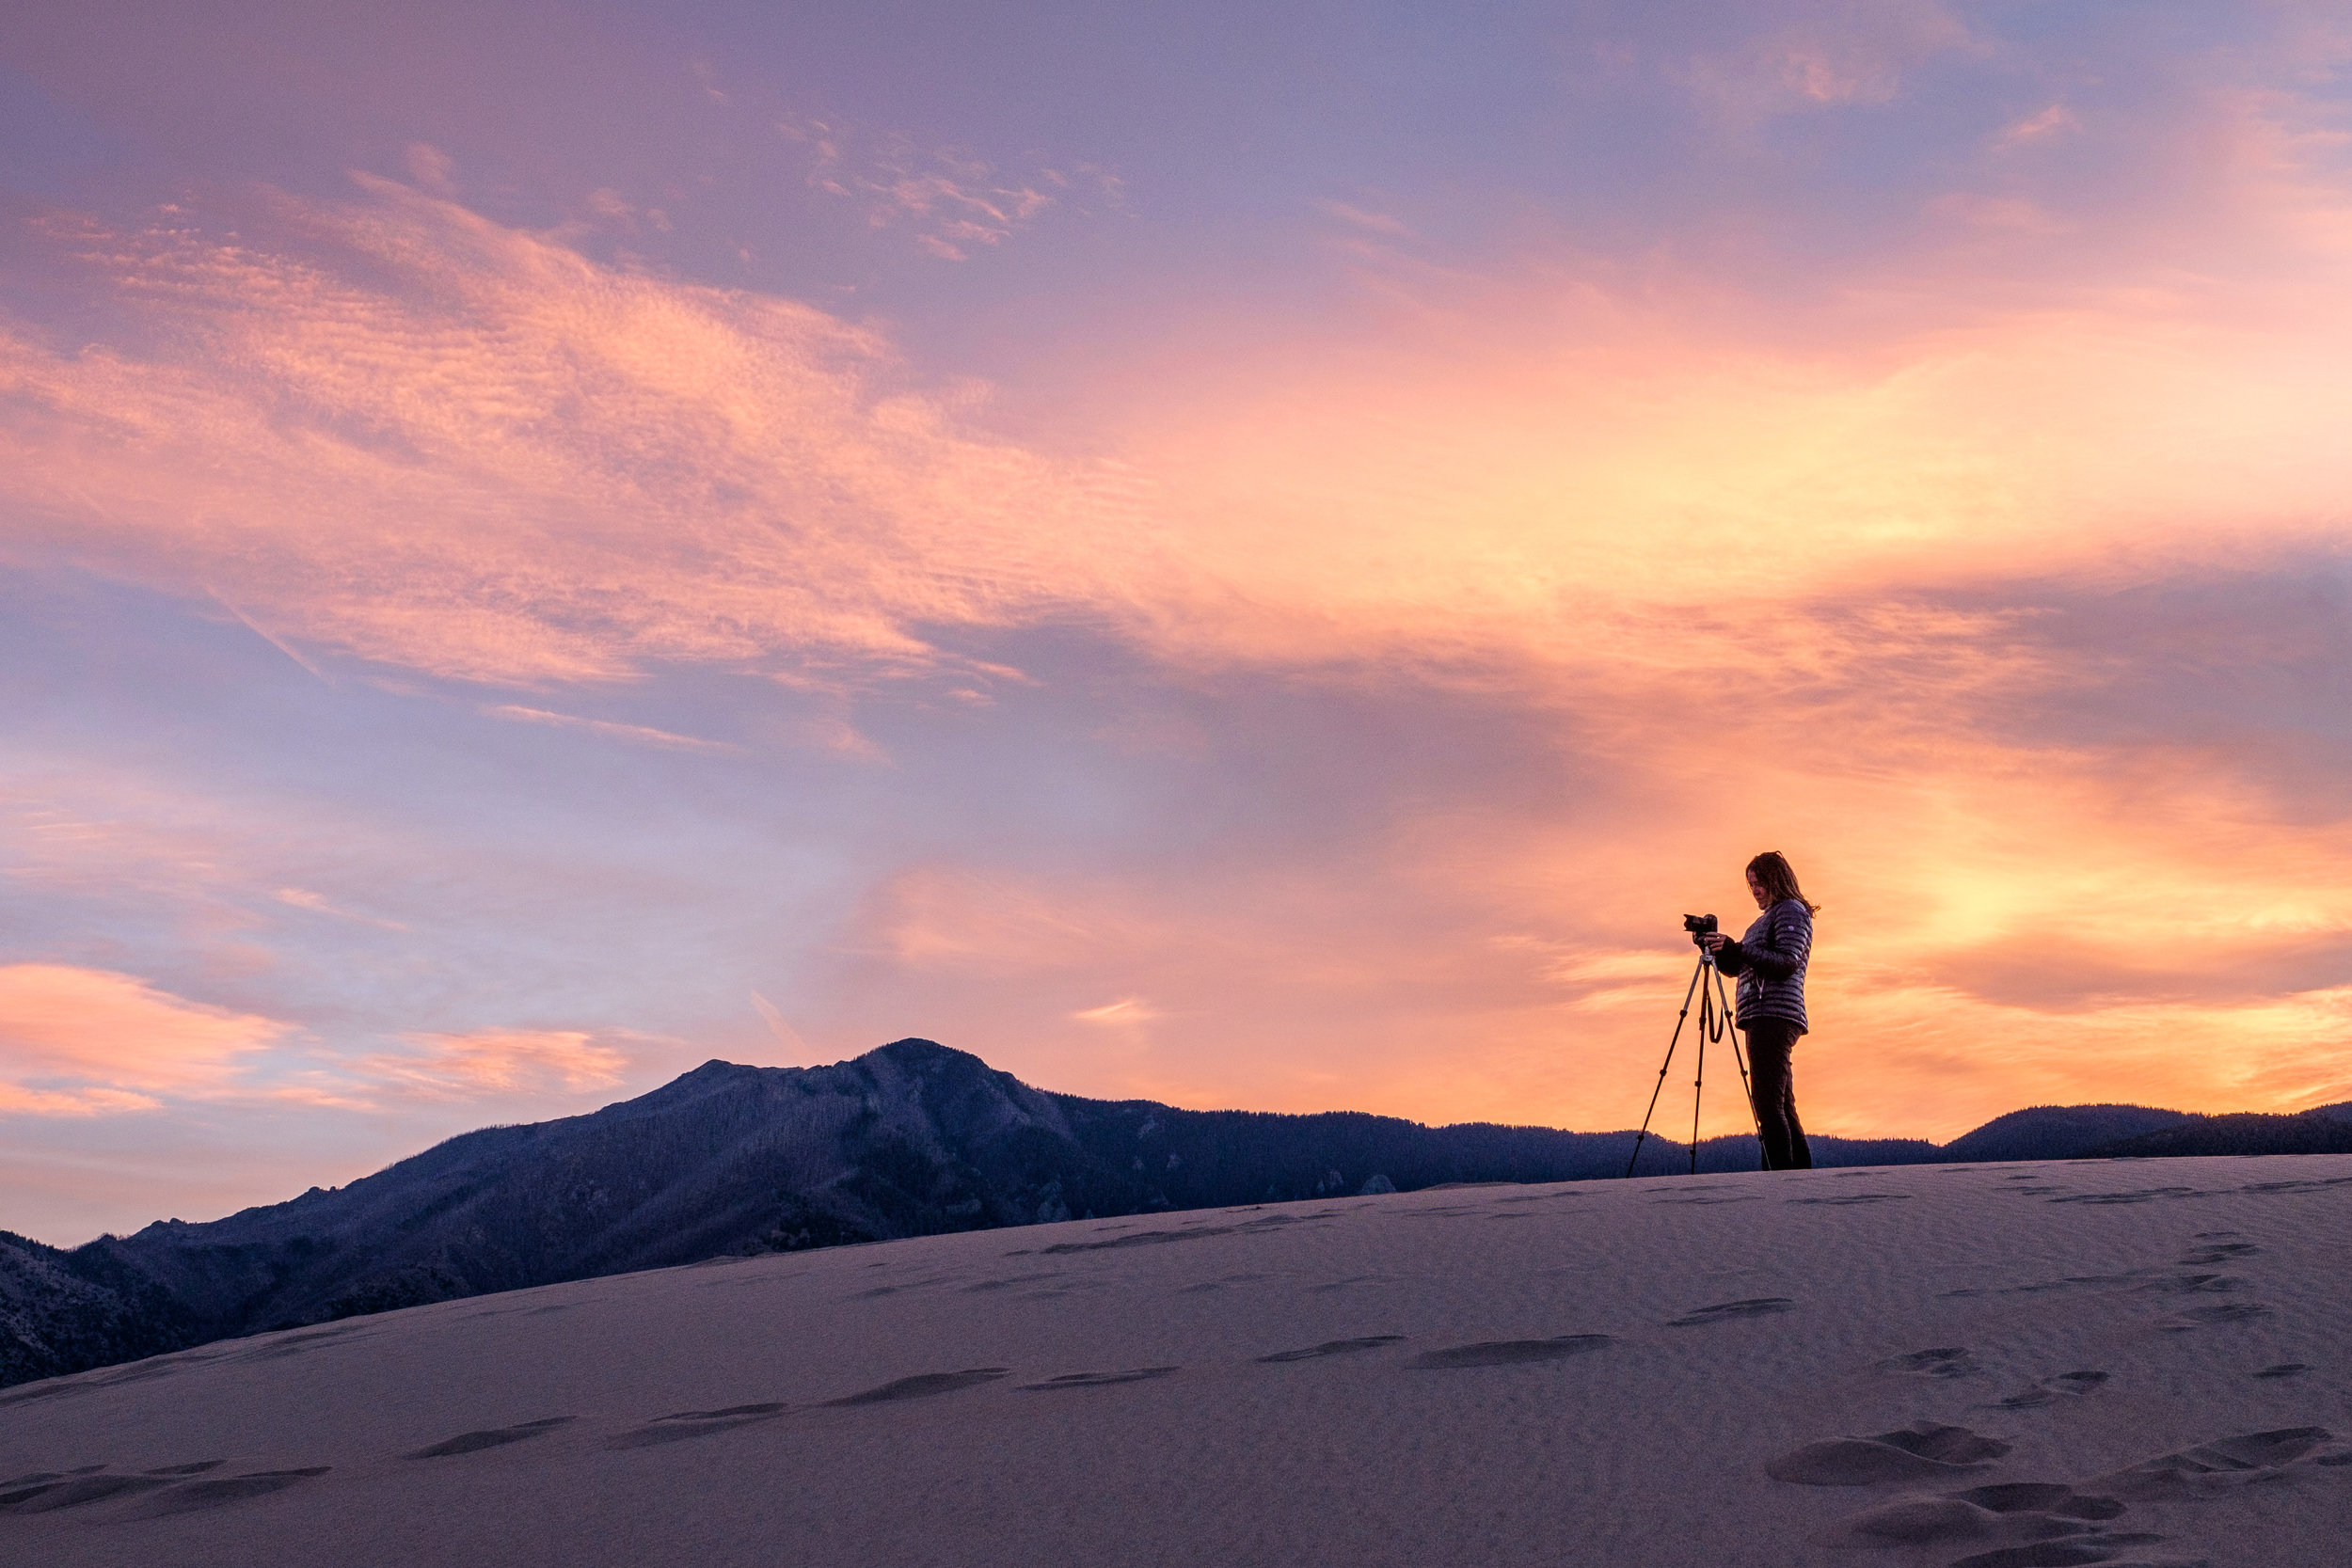 Sunset photography at Great Sand Dunes National Park and Preserve in Colorado